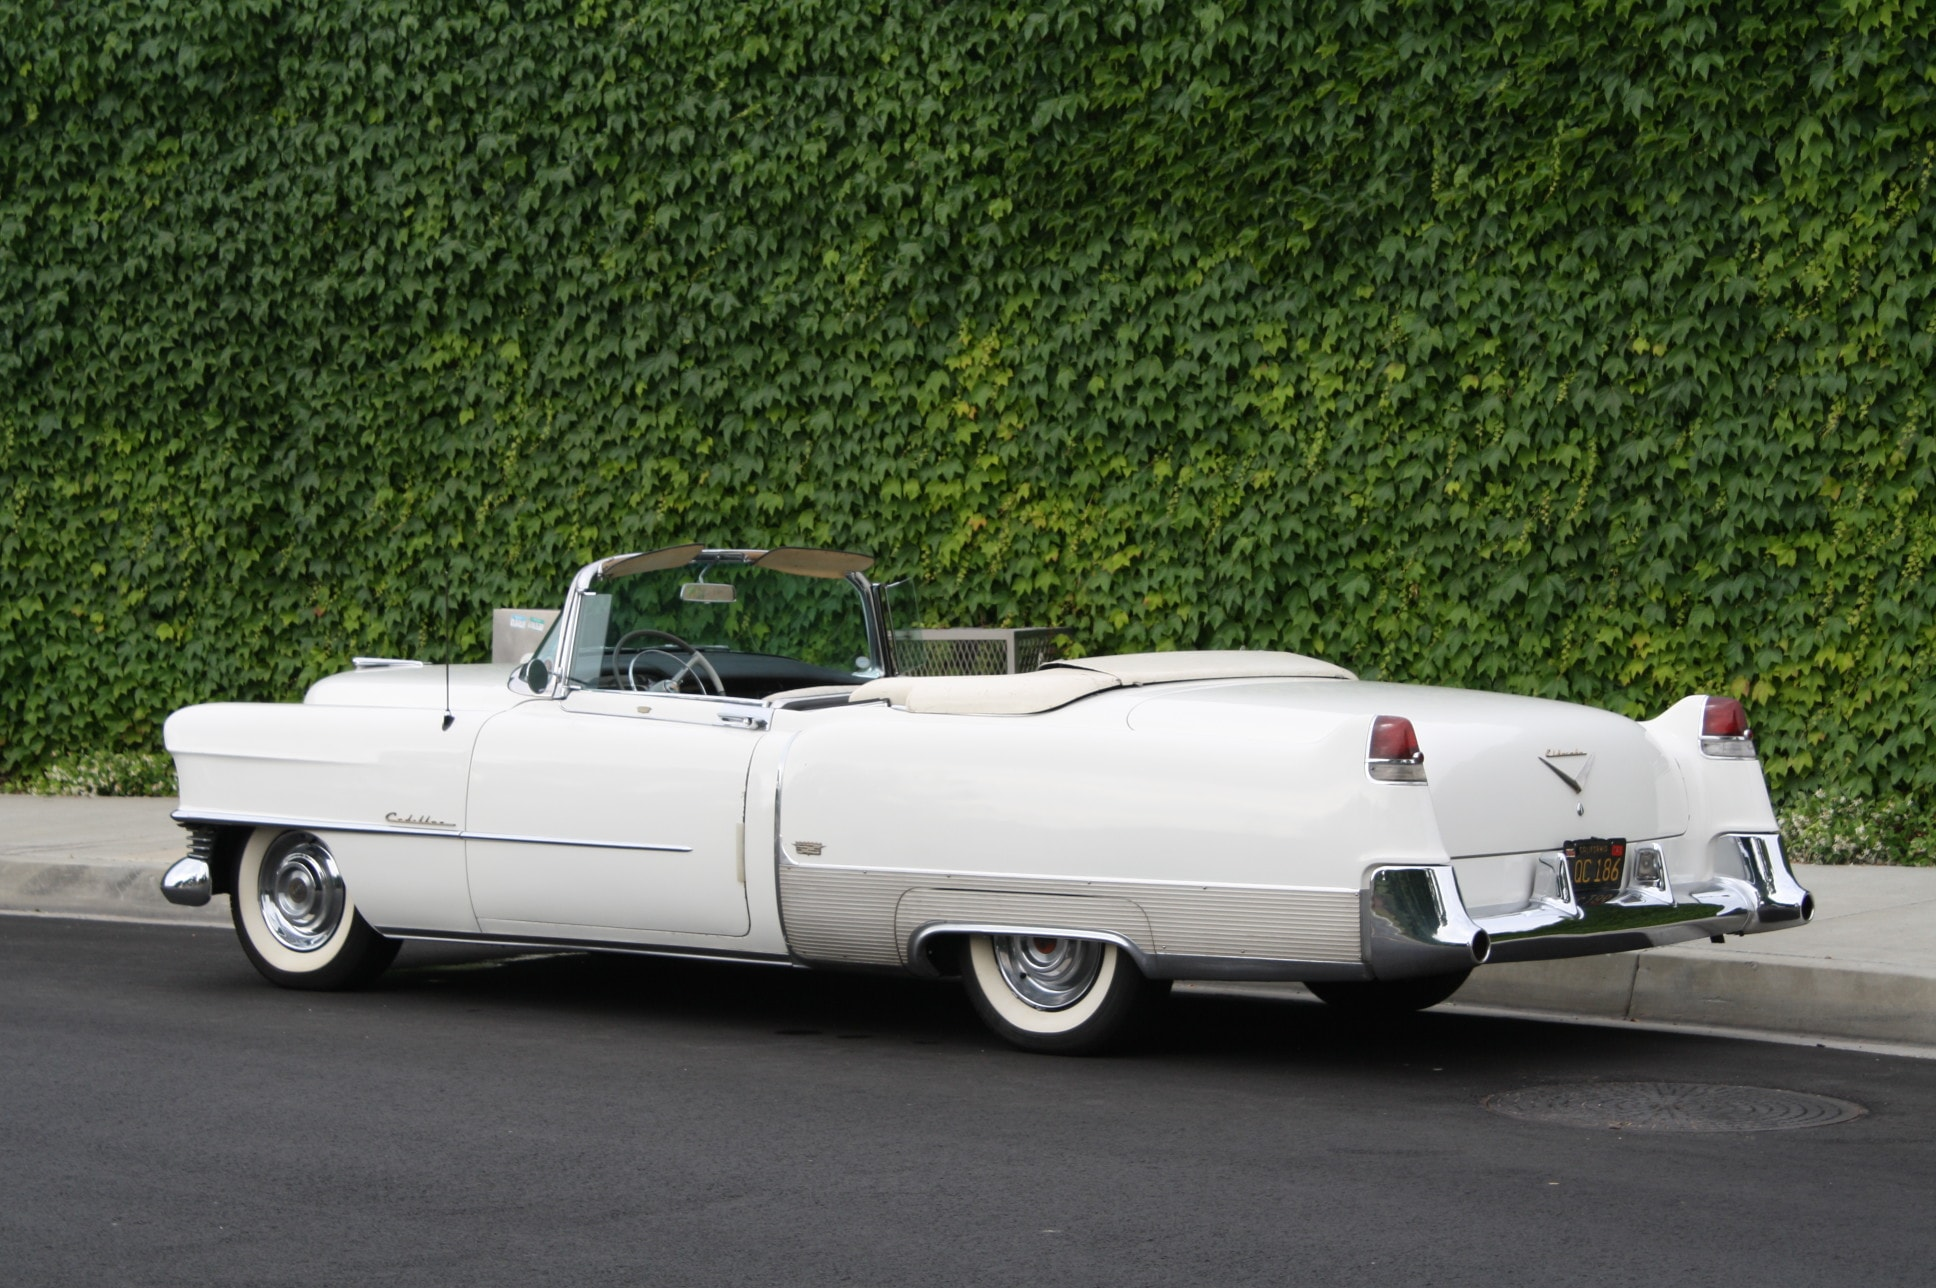 1954 Cadillac Eldorado Backgrounds